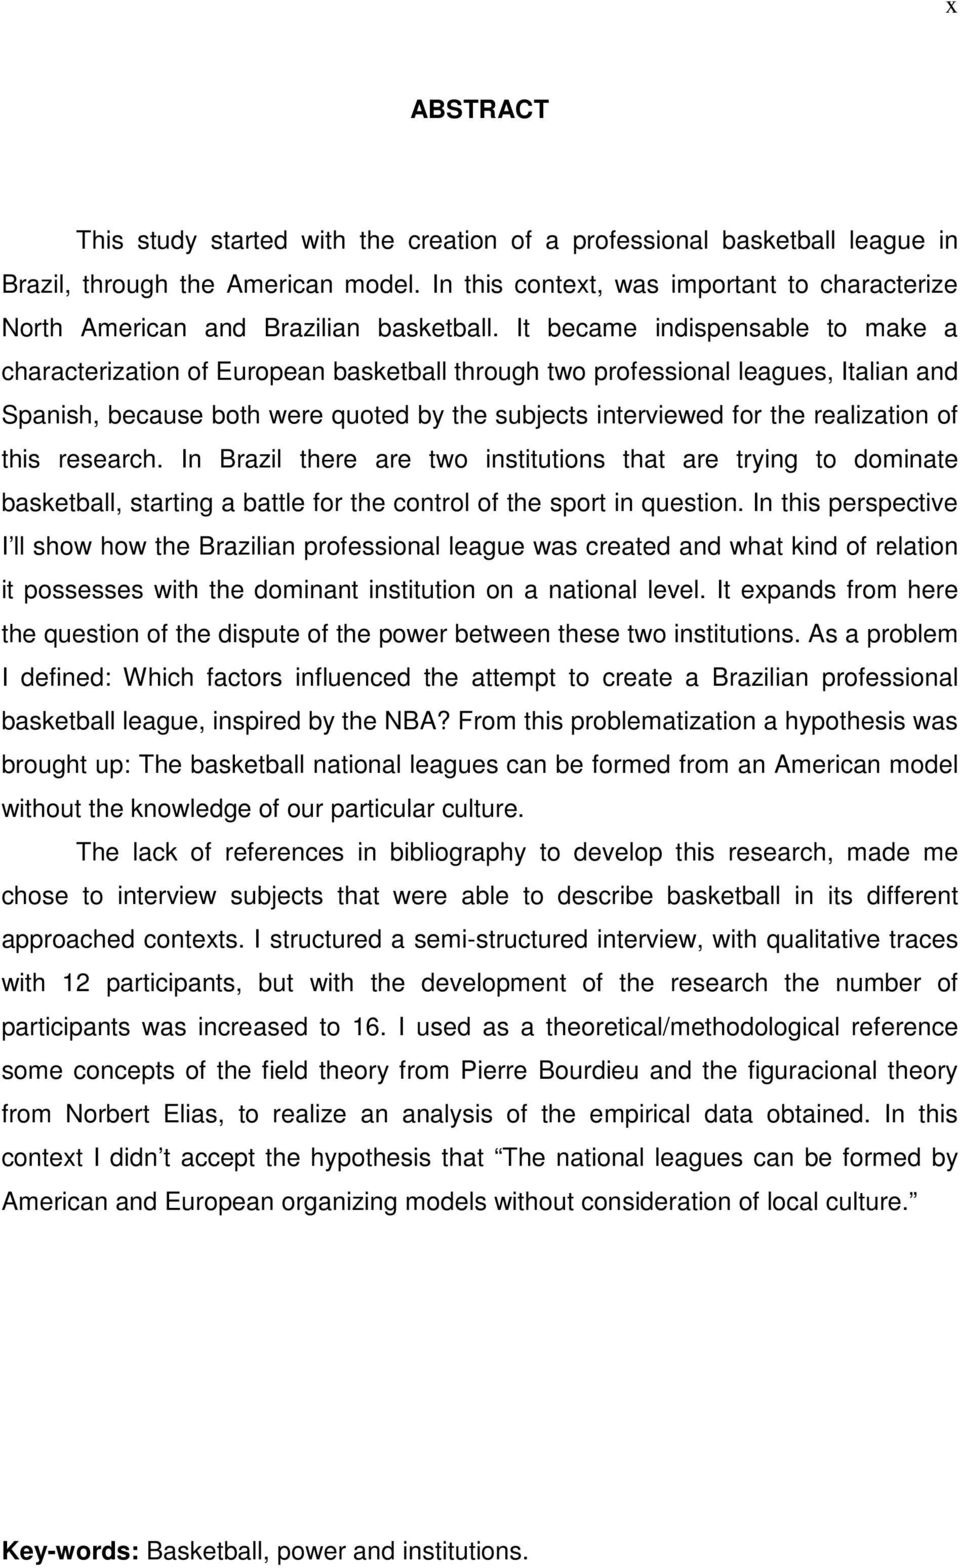 It became indispensable to make a characterization of European basketball through two professional leagues, Italian and Spanish, because both were quoted by the subjects interviewed for the